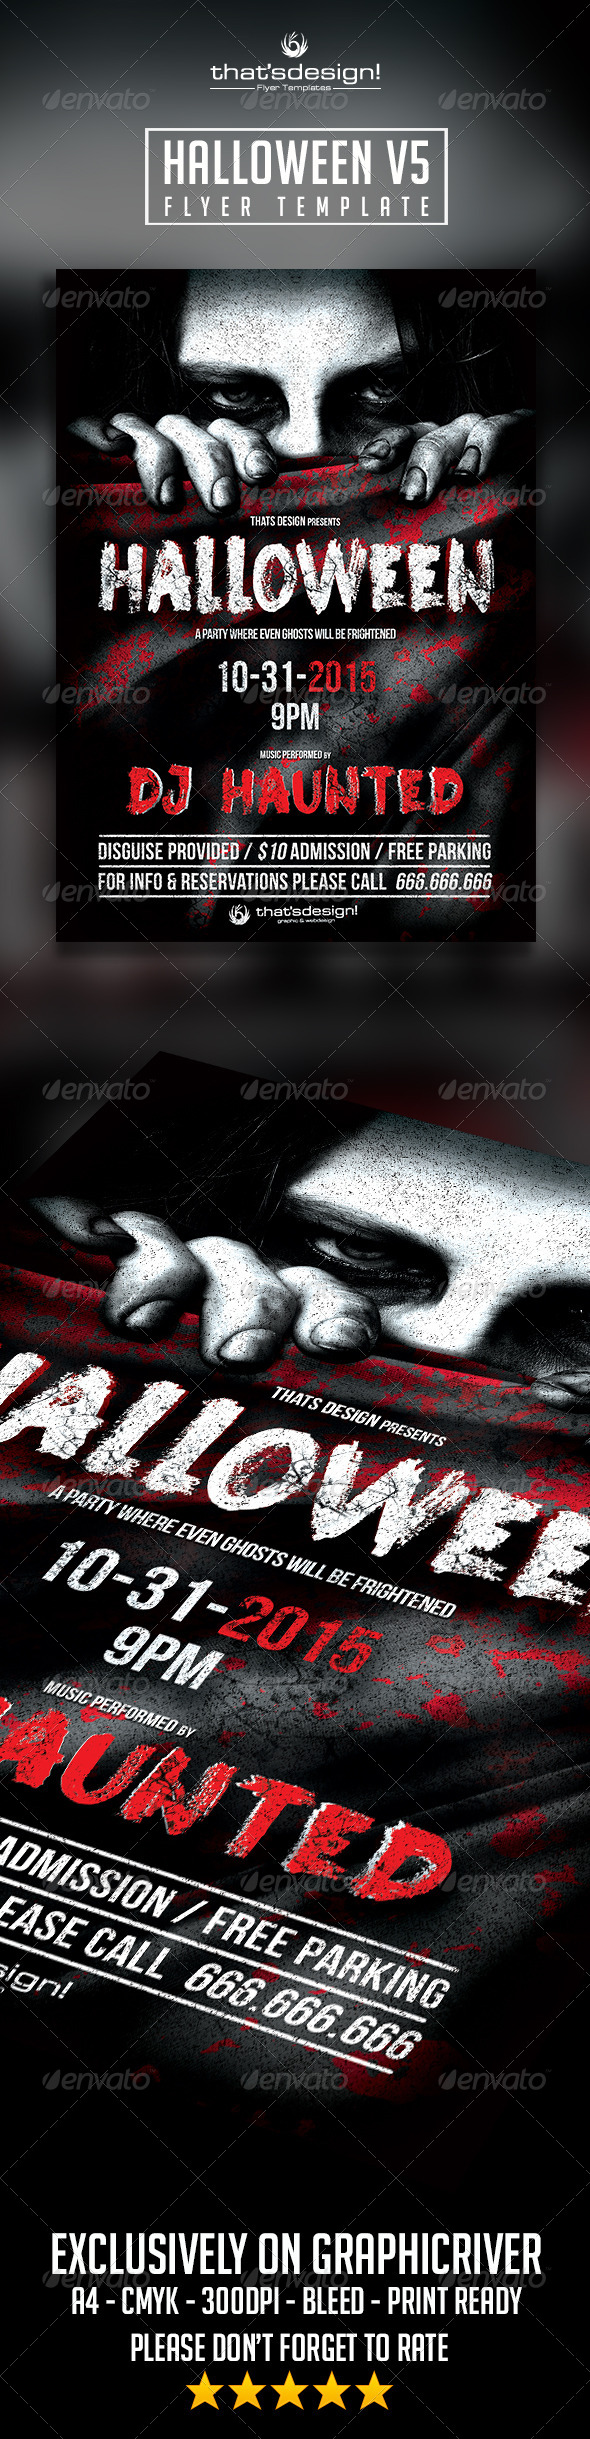 GraphicRiver Halloween Flyer Template V5 8546869